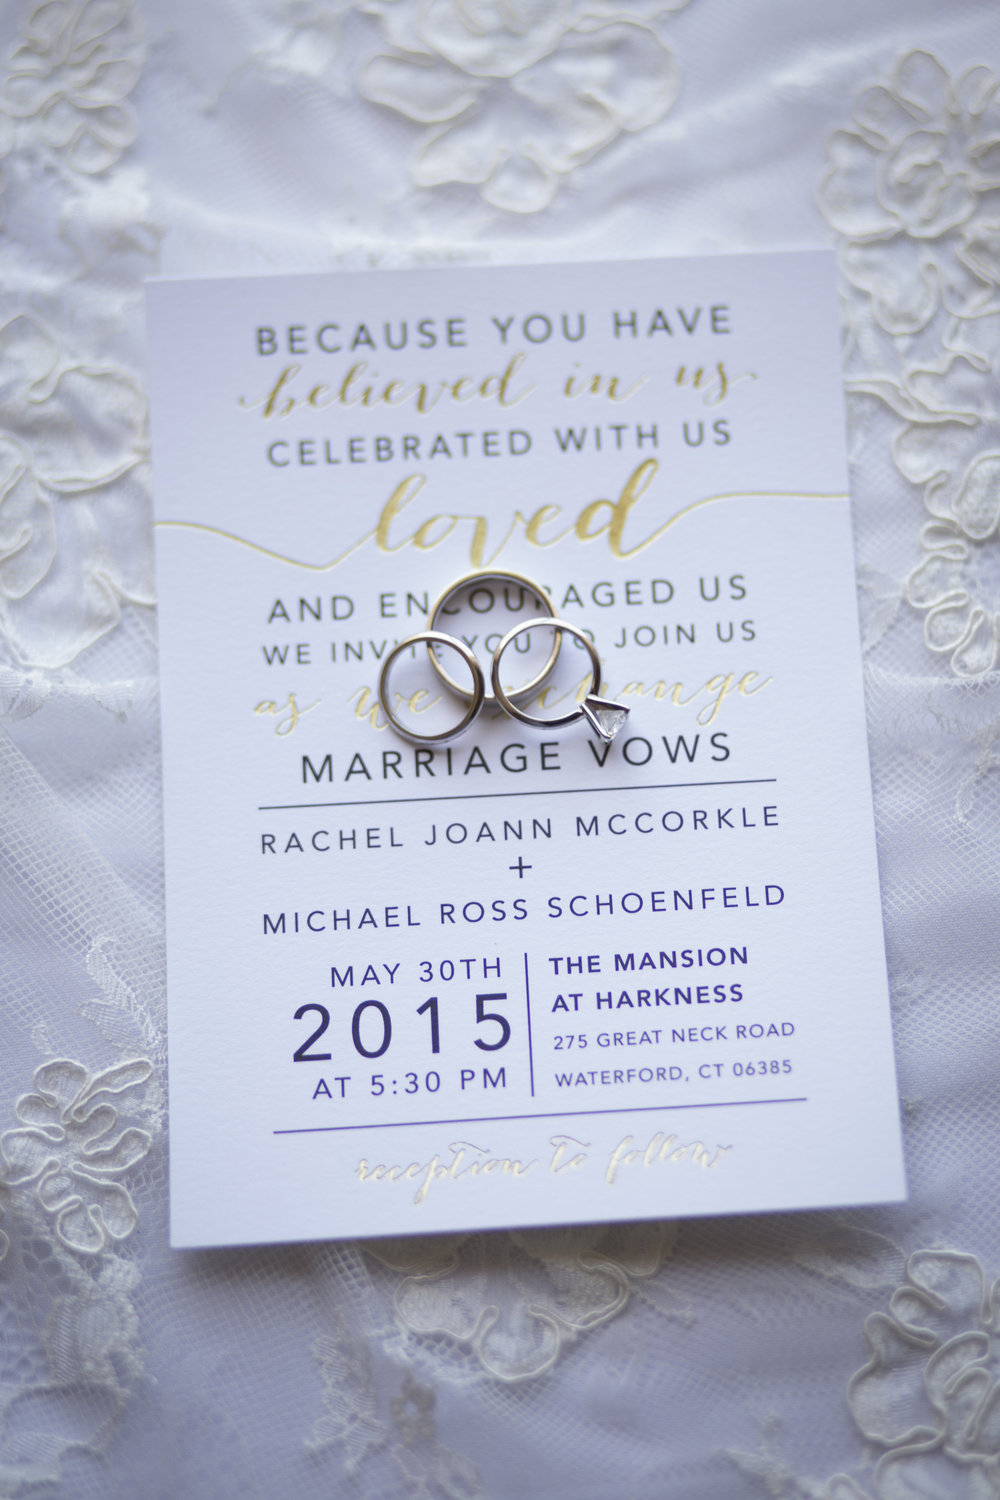 CT Wedding Eolia Mansion Amy Champagne Events Wedding Invitation, Wedding Rings